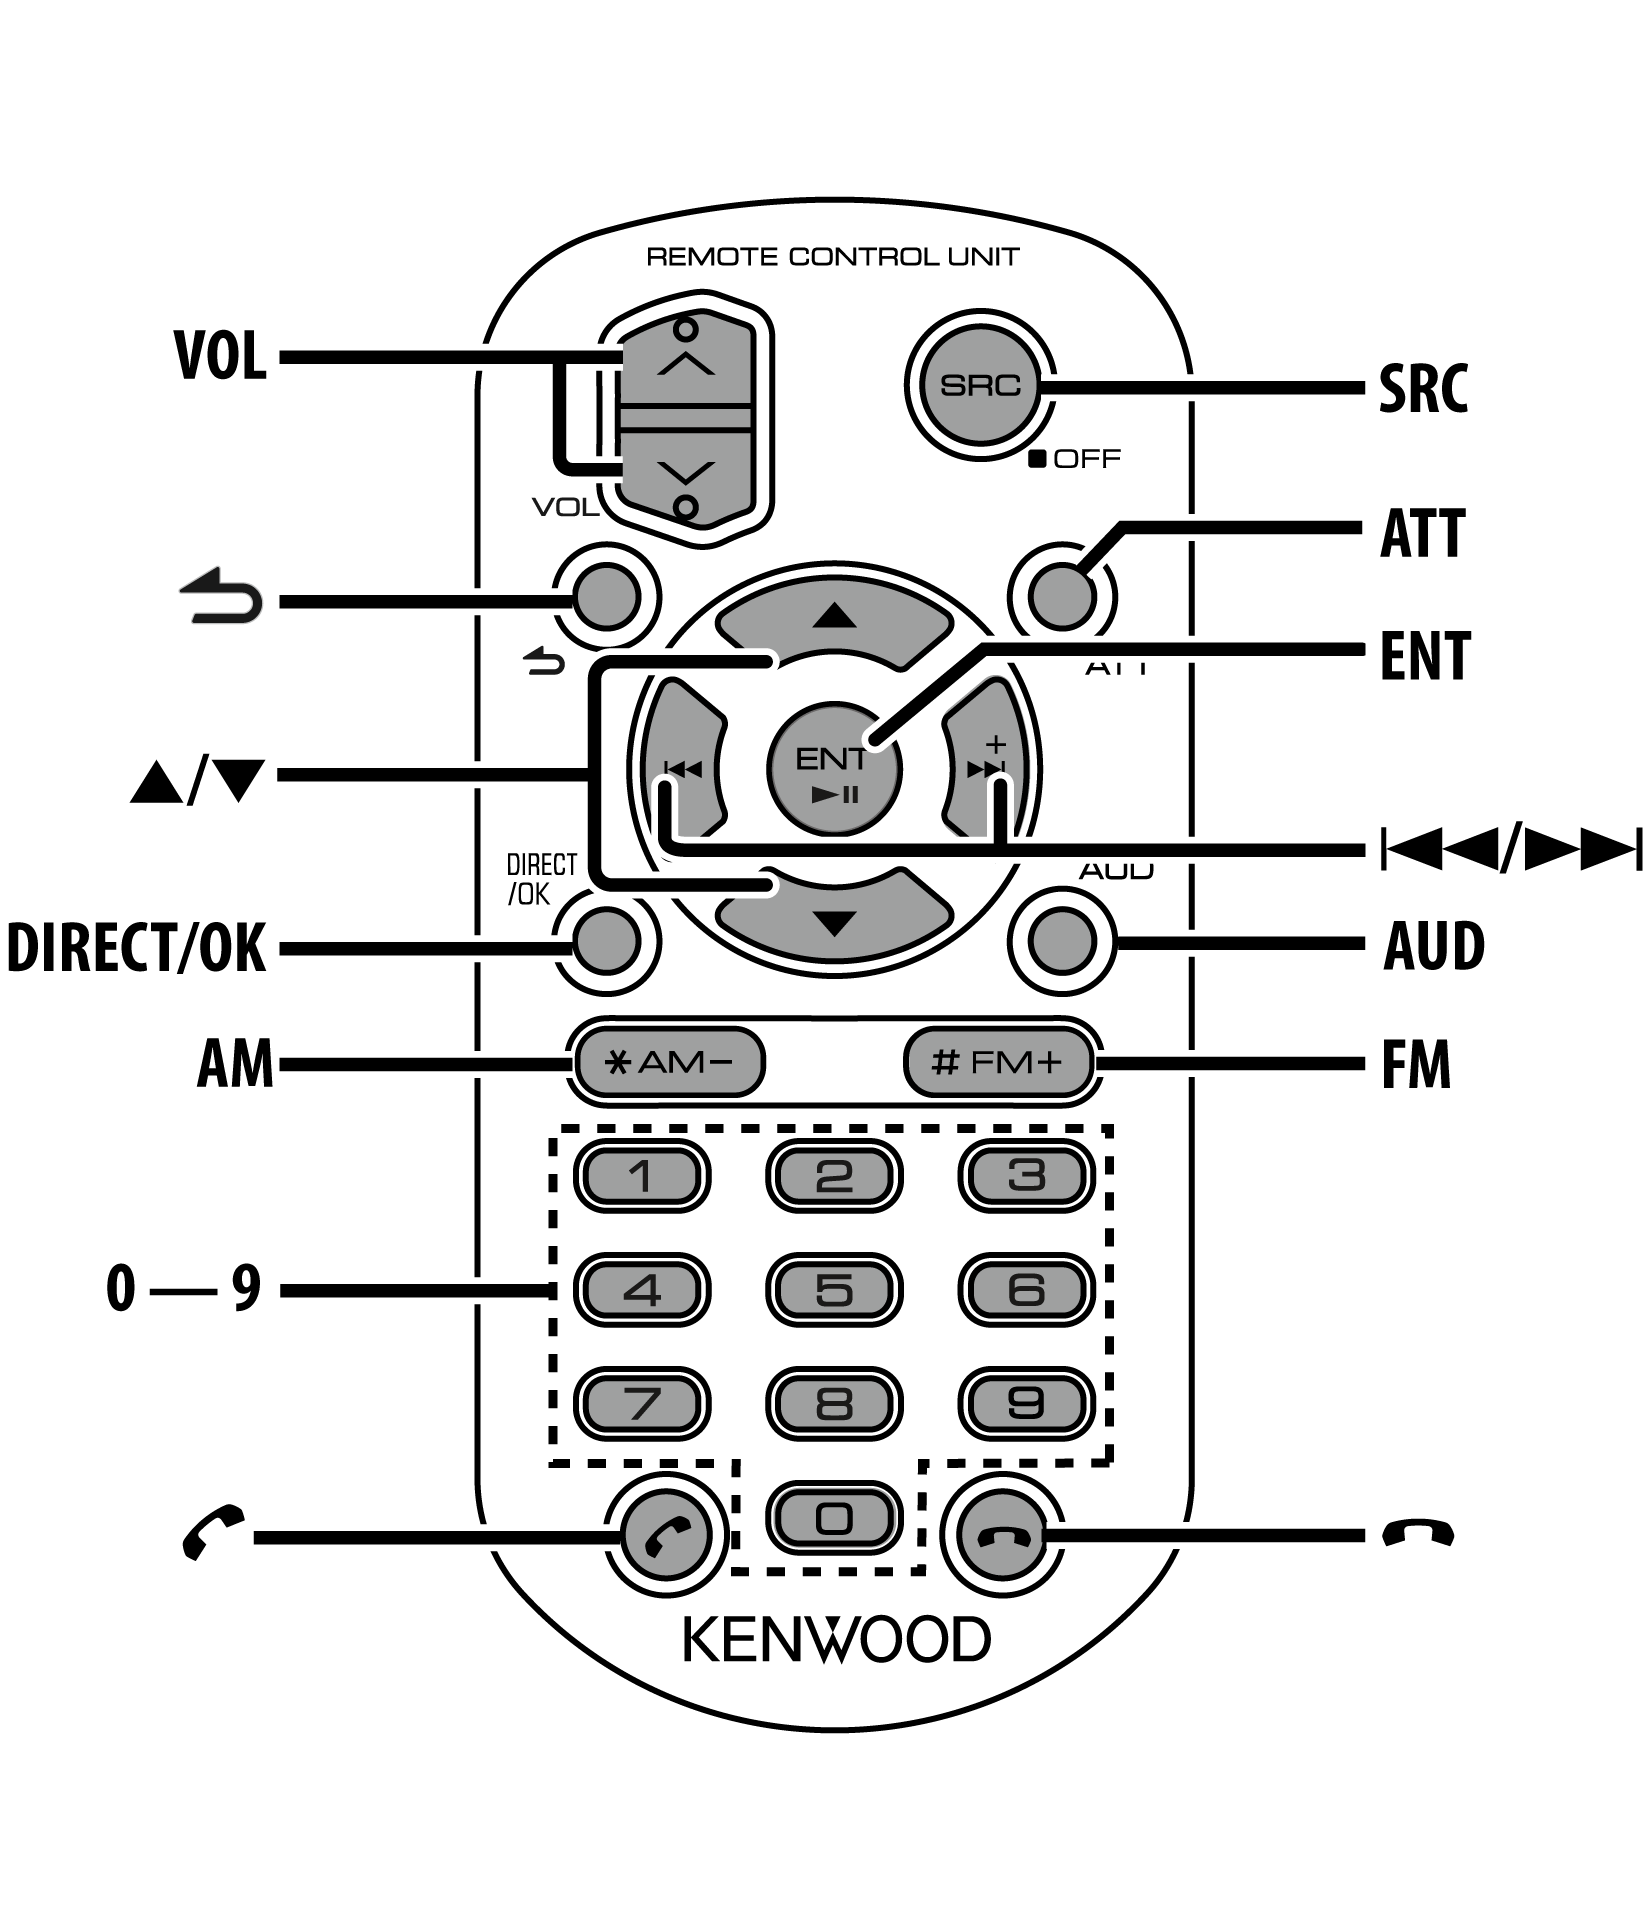 RC RC406 kdc x797 kdc bt755hd kenwood kdc-x797 wiring diagram at bakdesigns.co